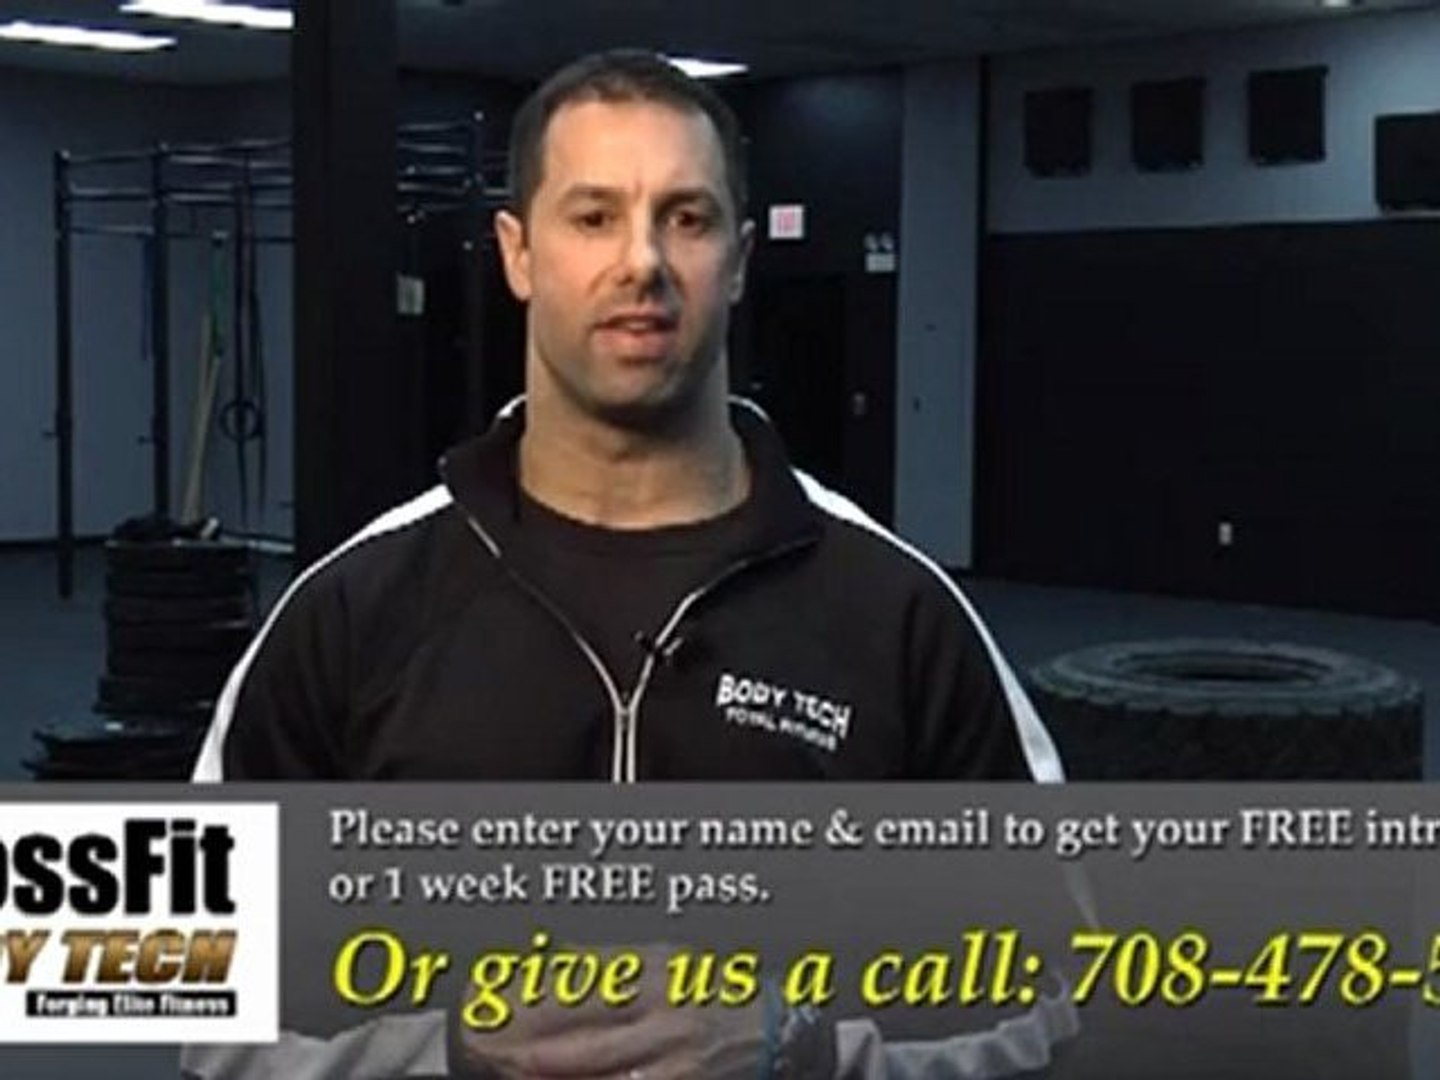 CrossFit Body Tech in Frankfort, IL l CrossFit Body Tech in